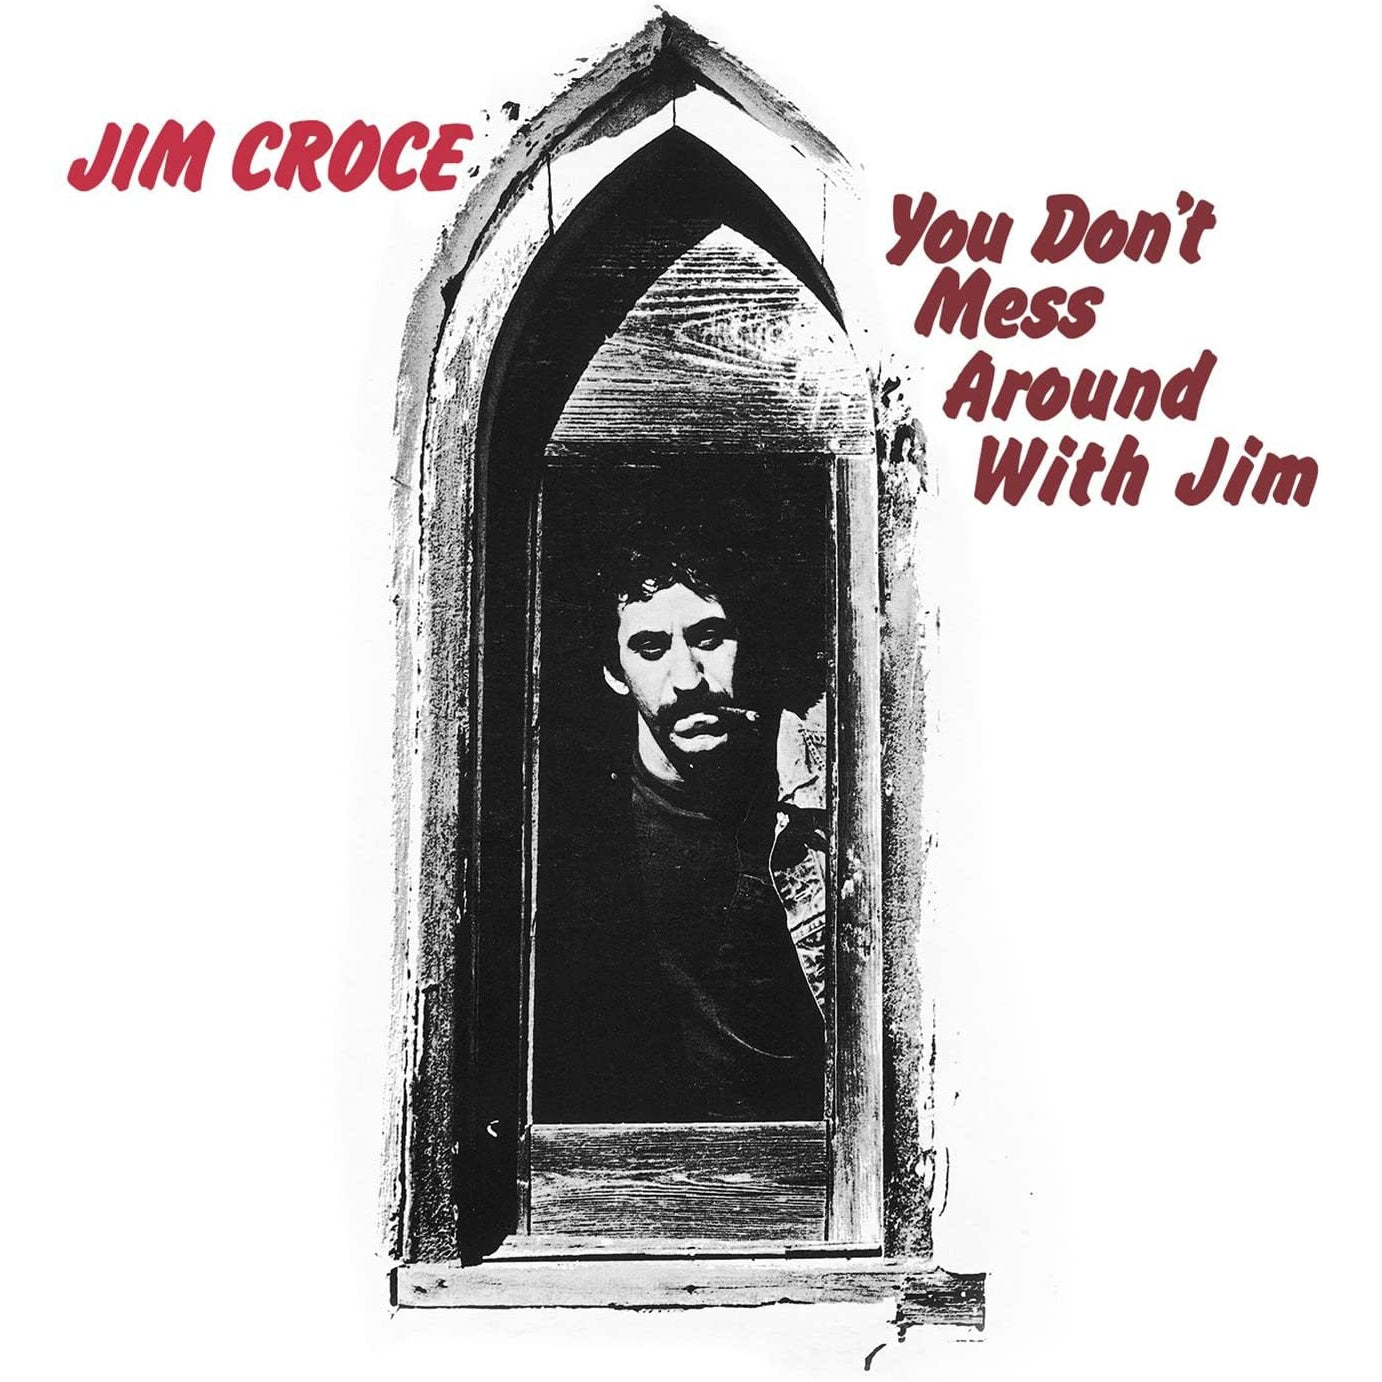 Jim Croce - You Don't Mess Around With Jim [Vinyl]